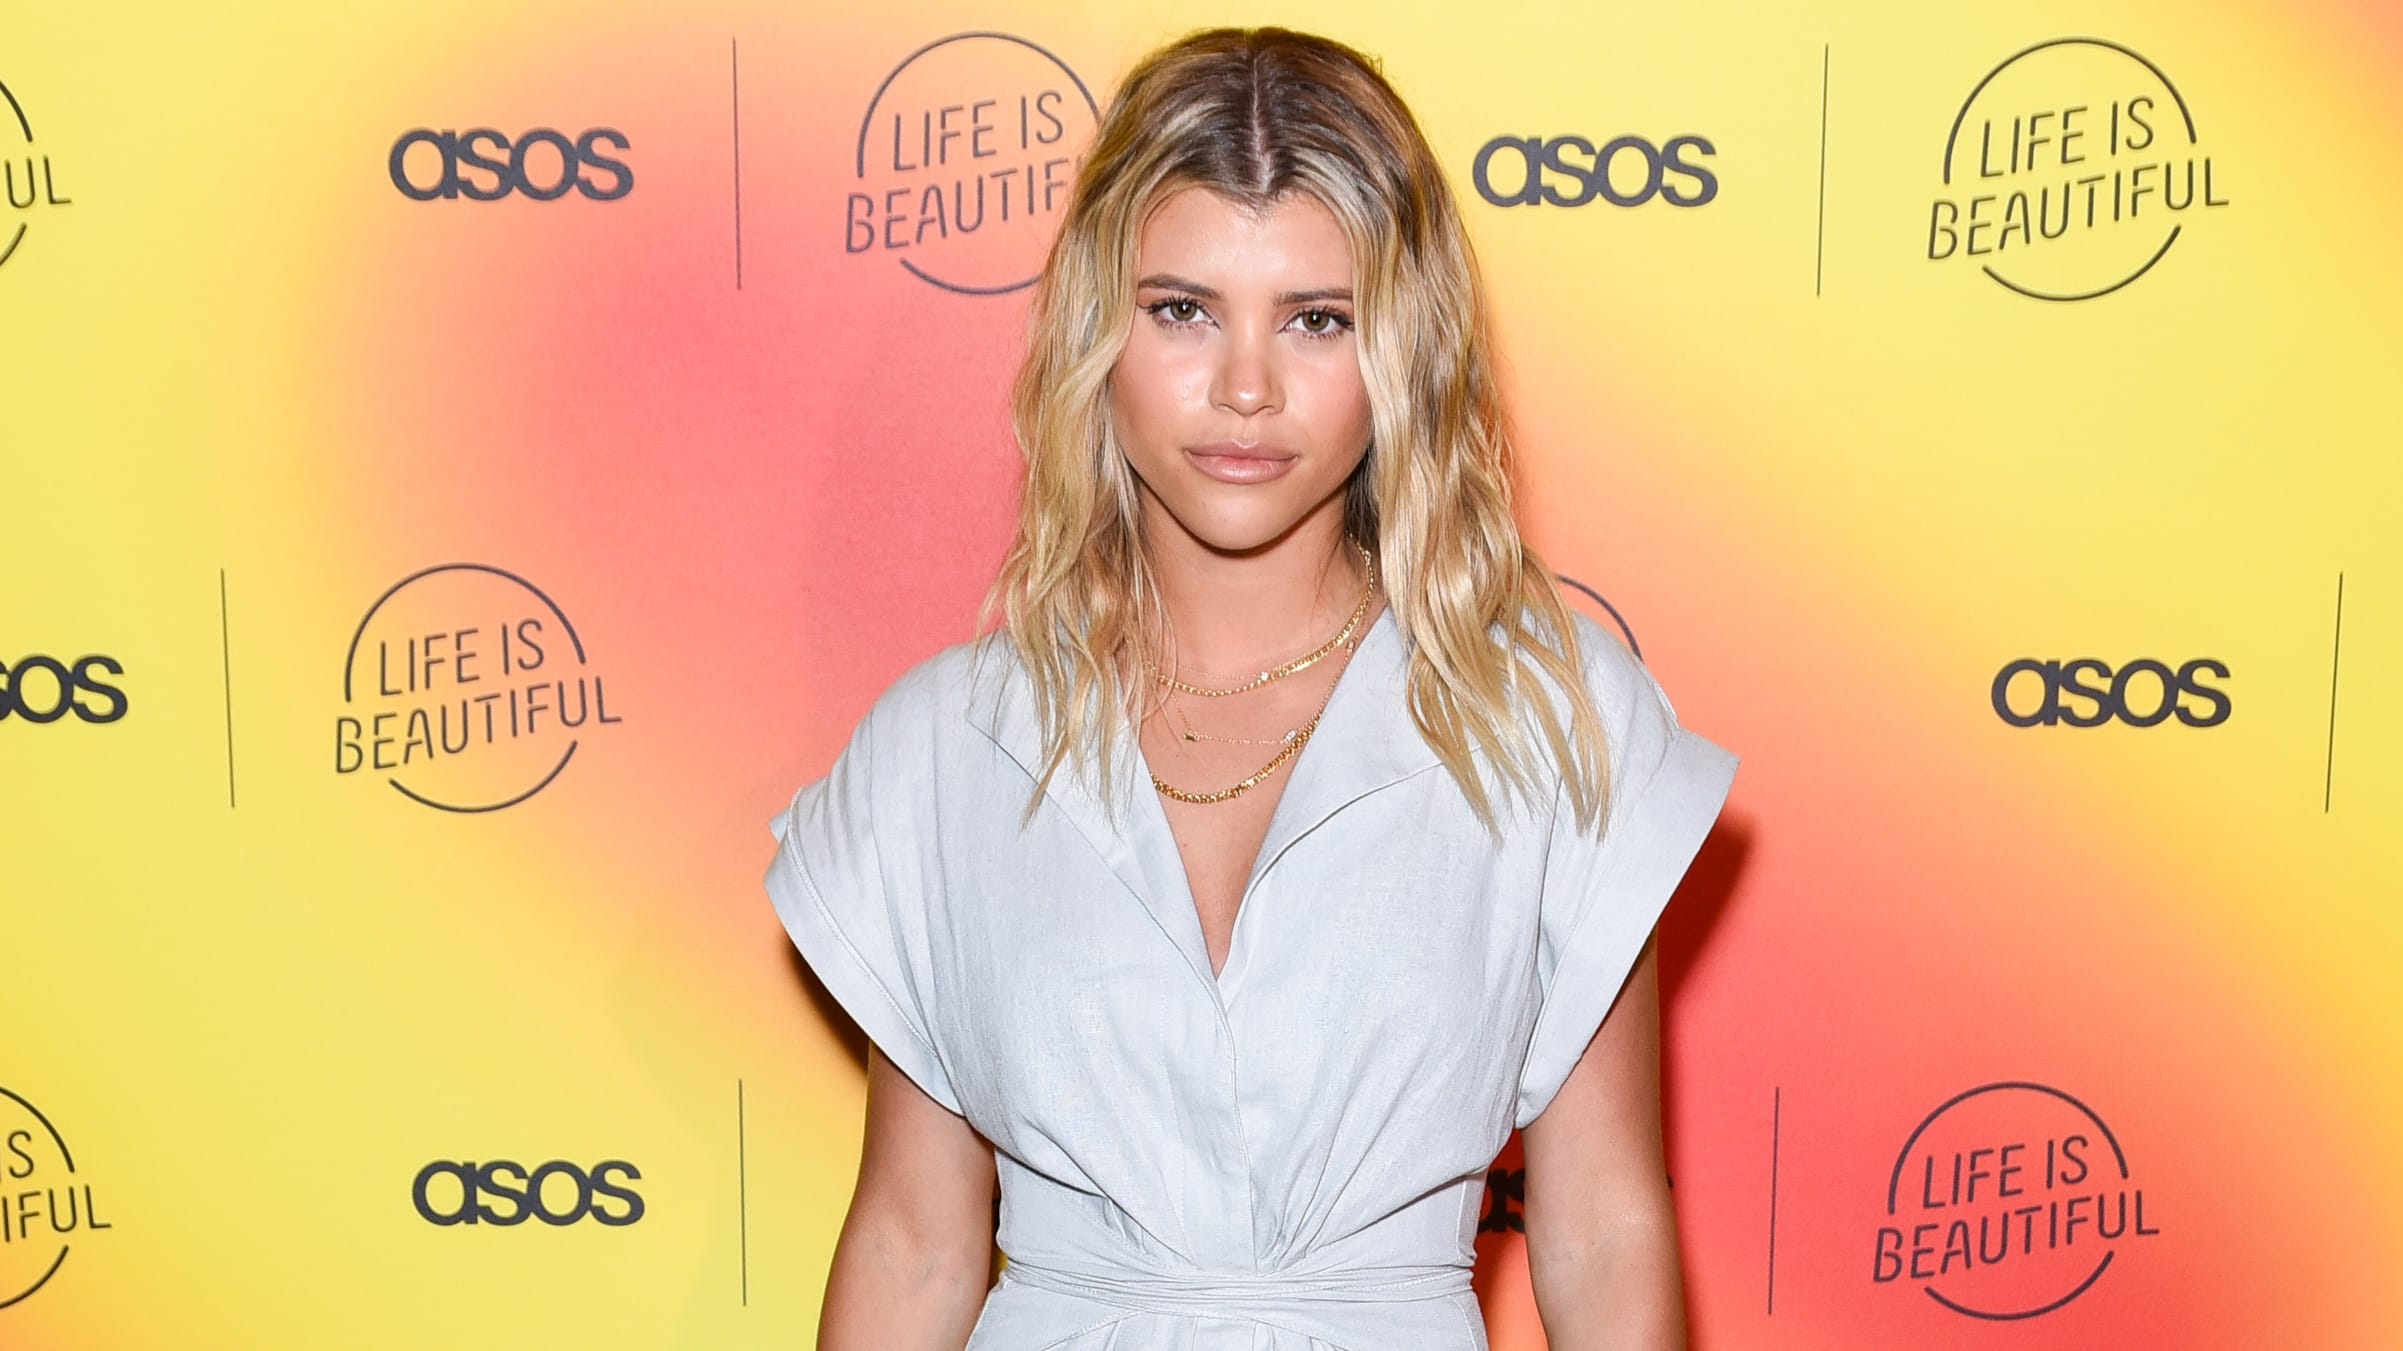 LOS ANGELES, CALIFORNIA - APRIL 25: Sofia Richie attends ASOS celebrates partnership with Life Is Beautiful at No Name on April 25, 2019 in Los Angeles, California. (Photo by Presley Ann/Getty Images)